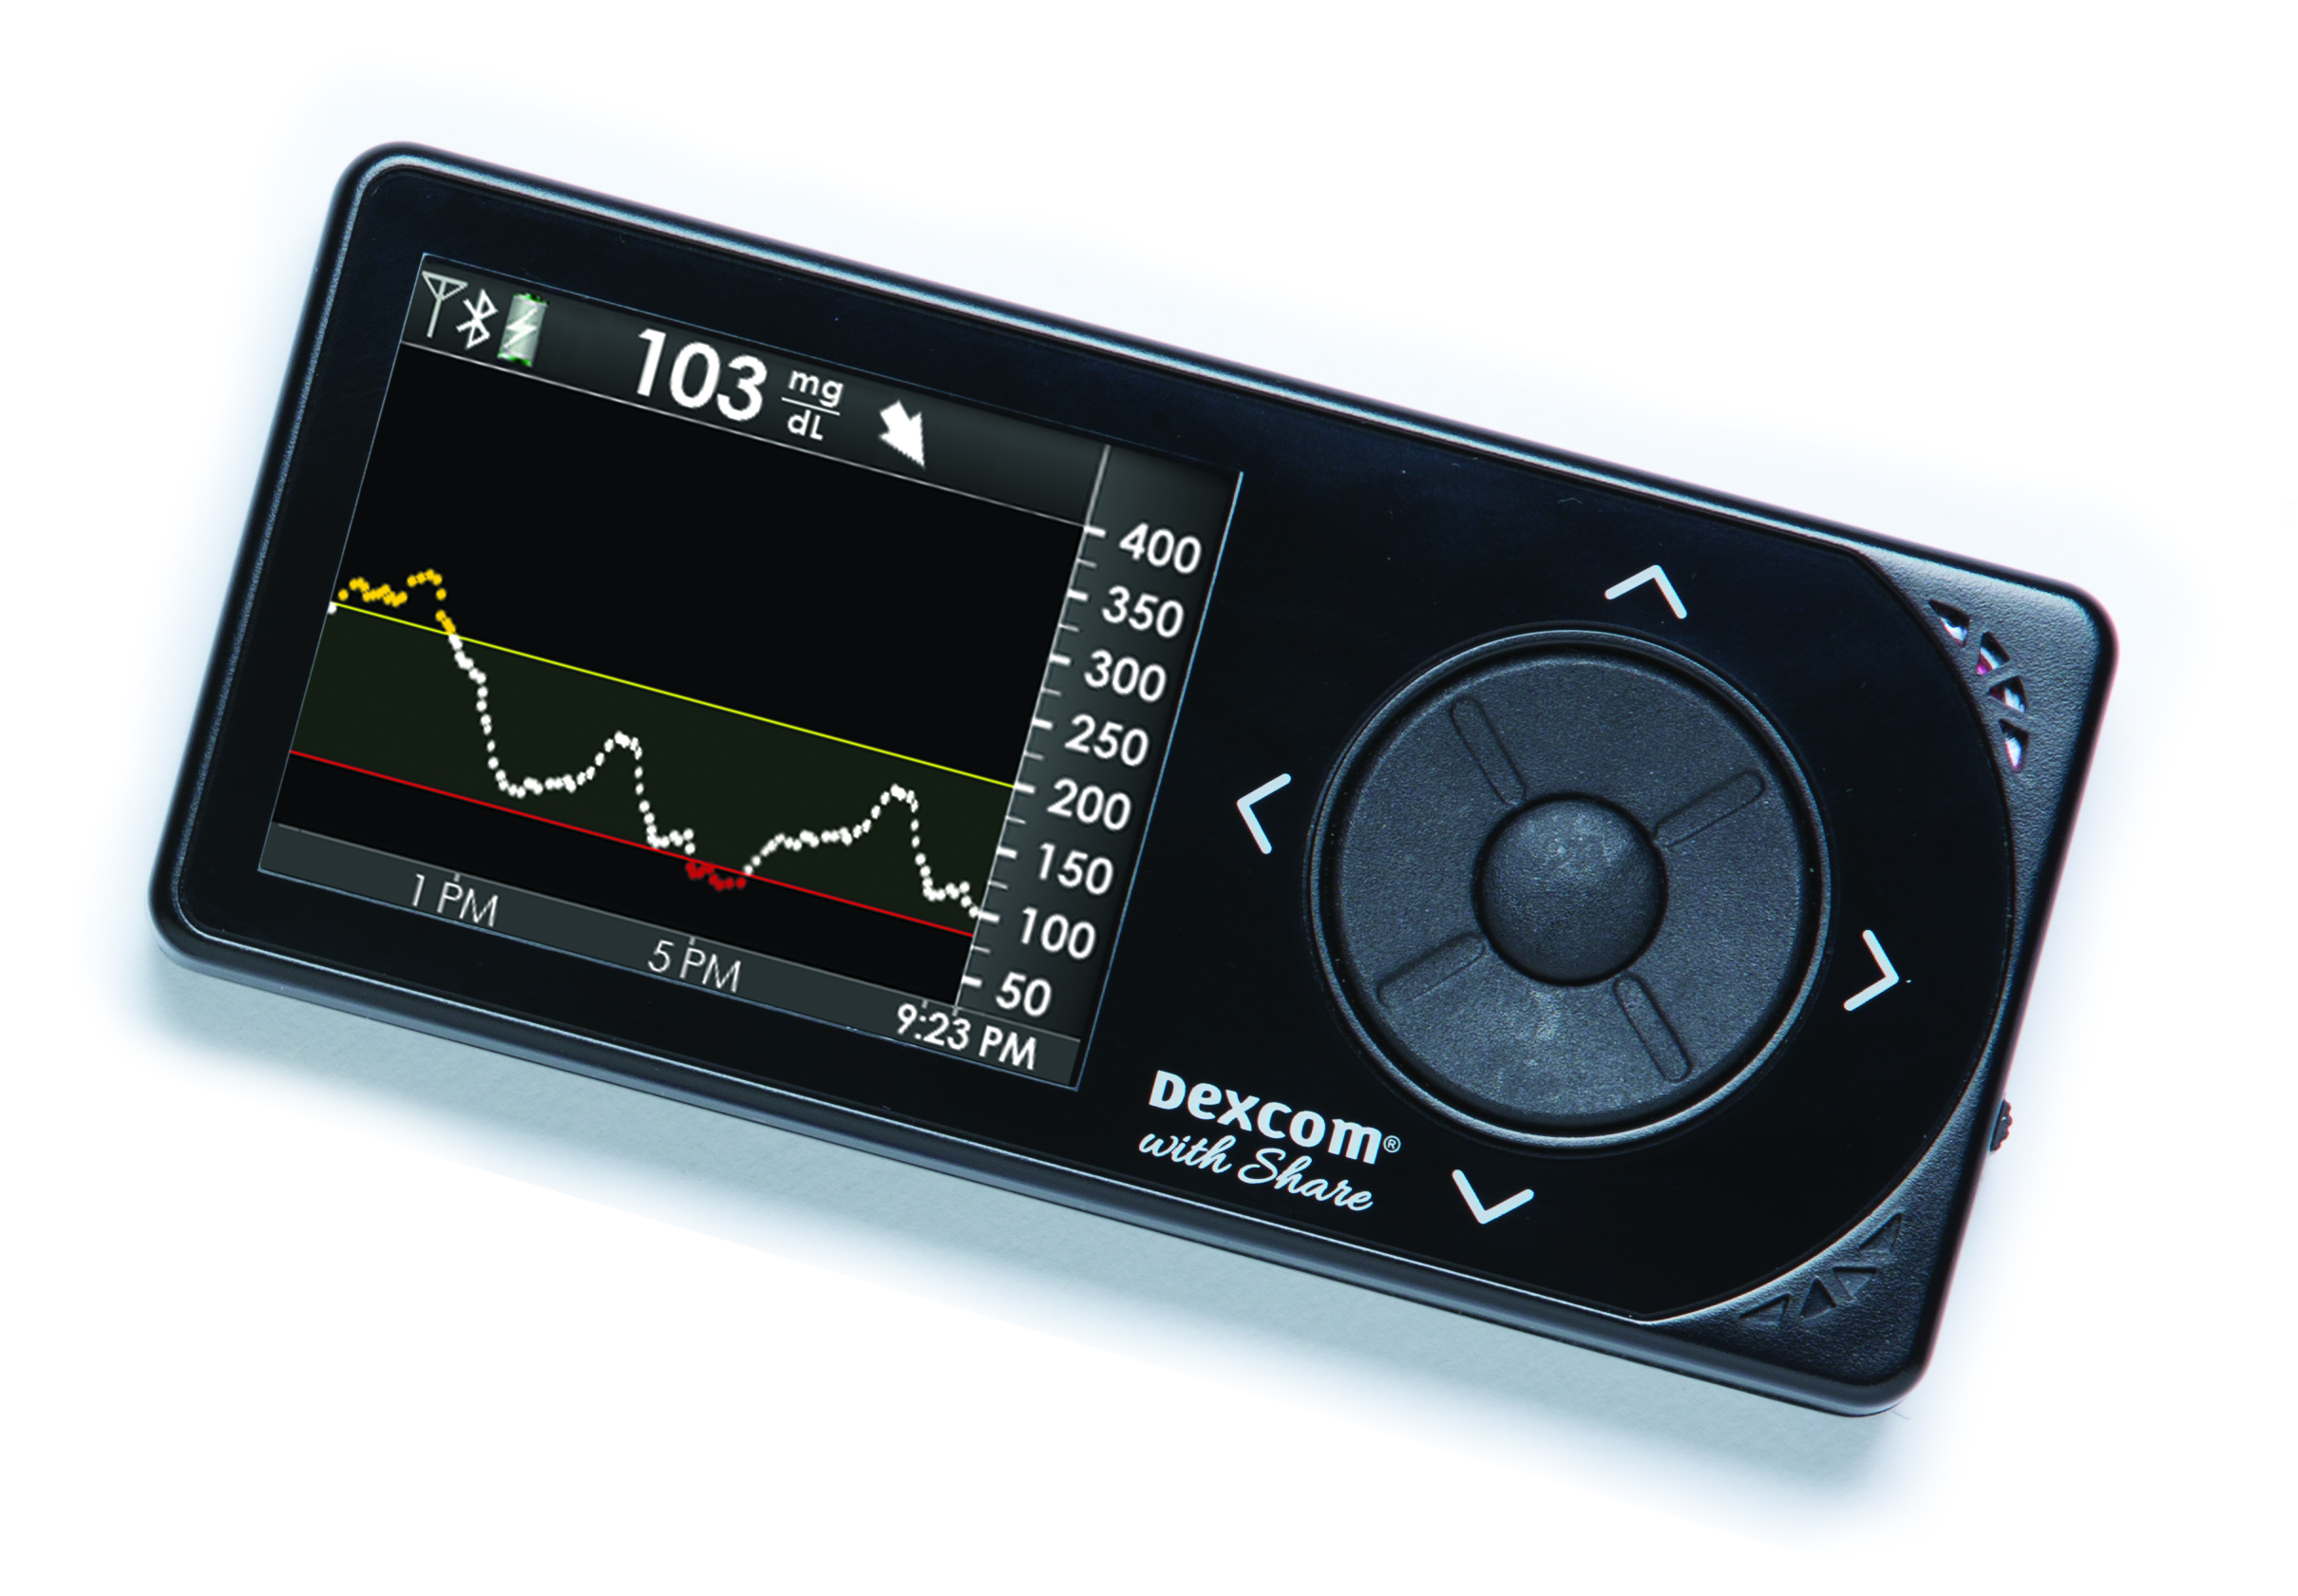 Dexcom G4 174 Platinum Media Images Profile Videos Amp Logos